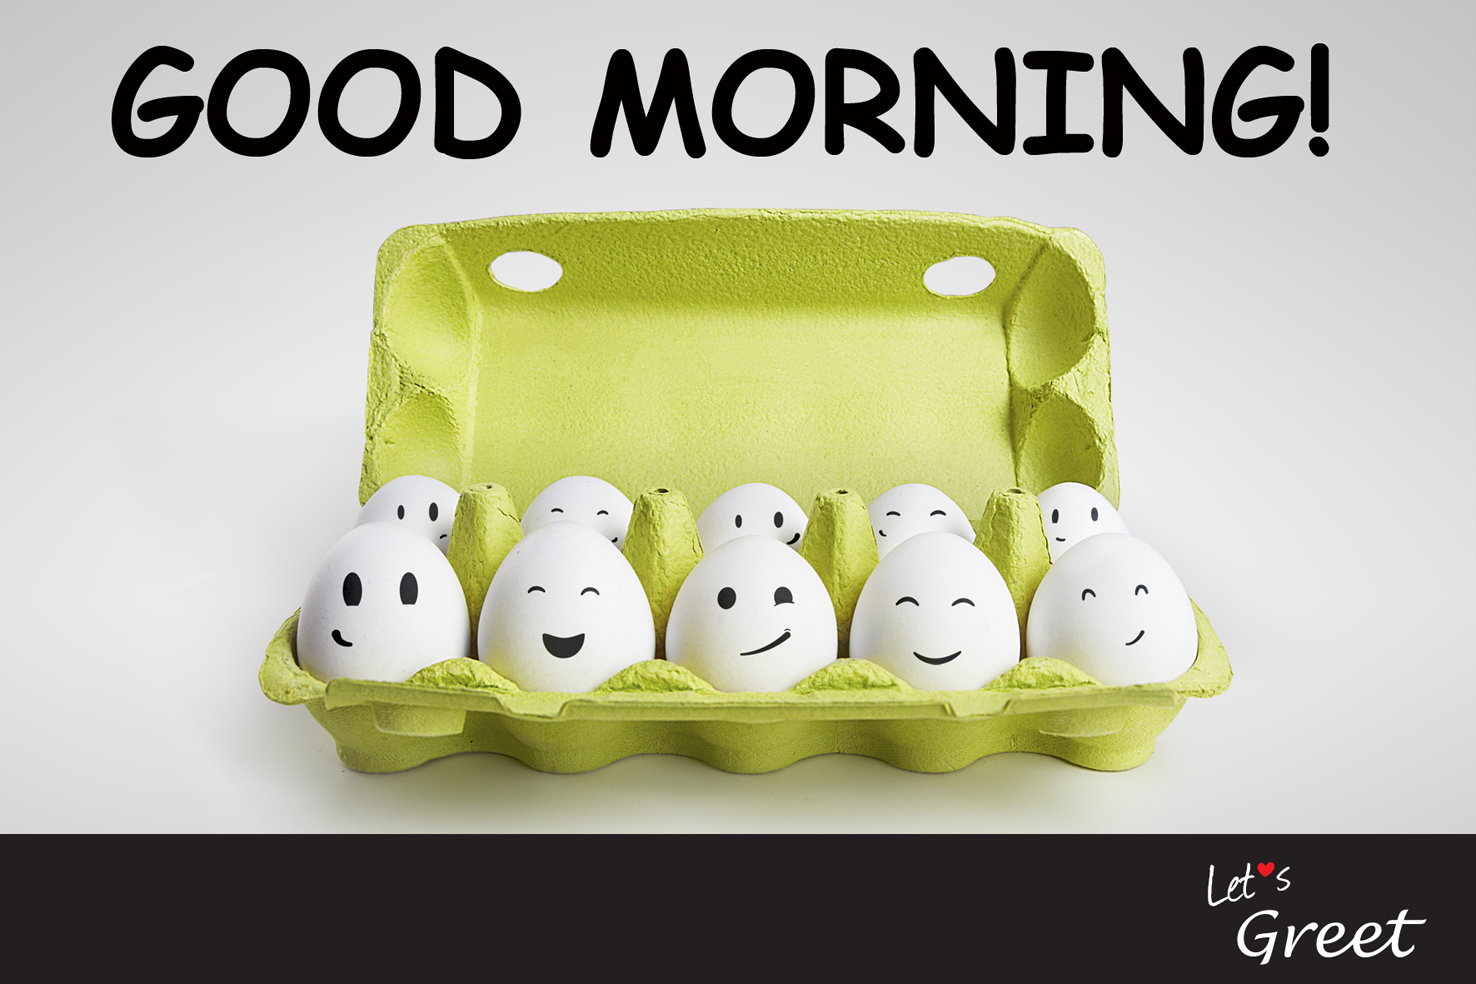 Lets greet these white eggs smiled good morning these white eggs smiled good morning m4hsunfo